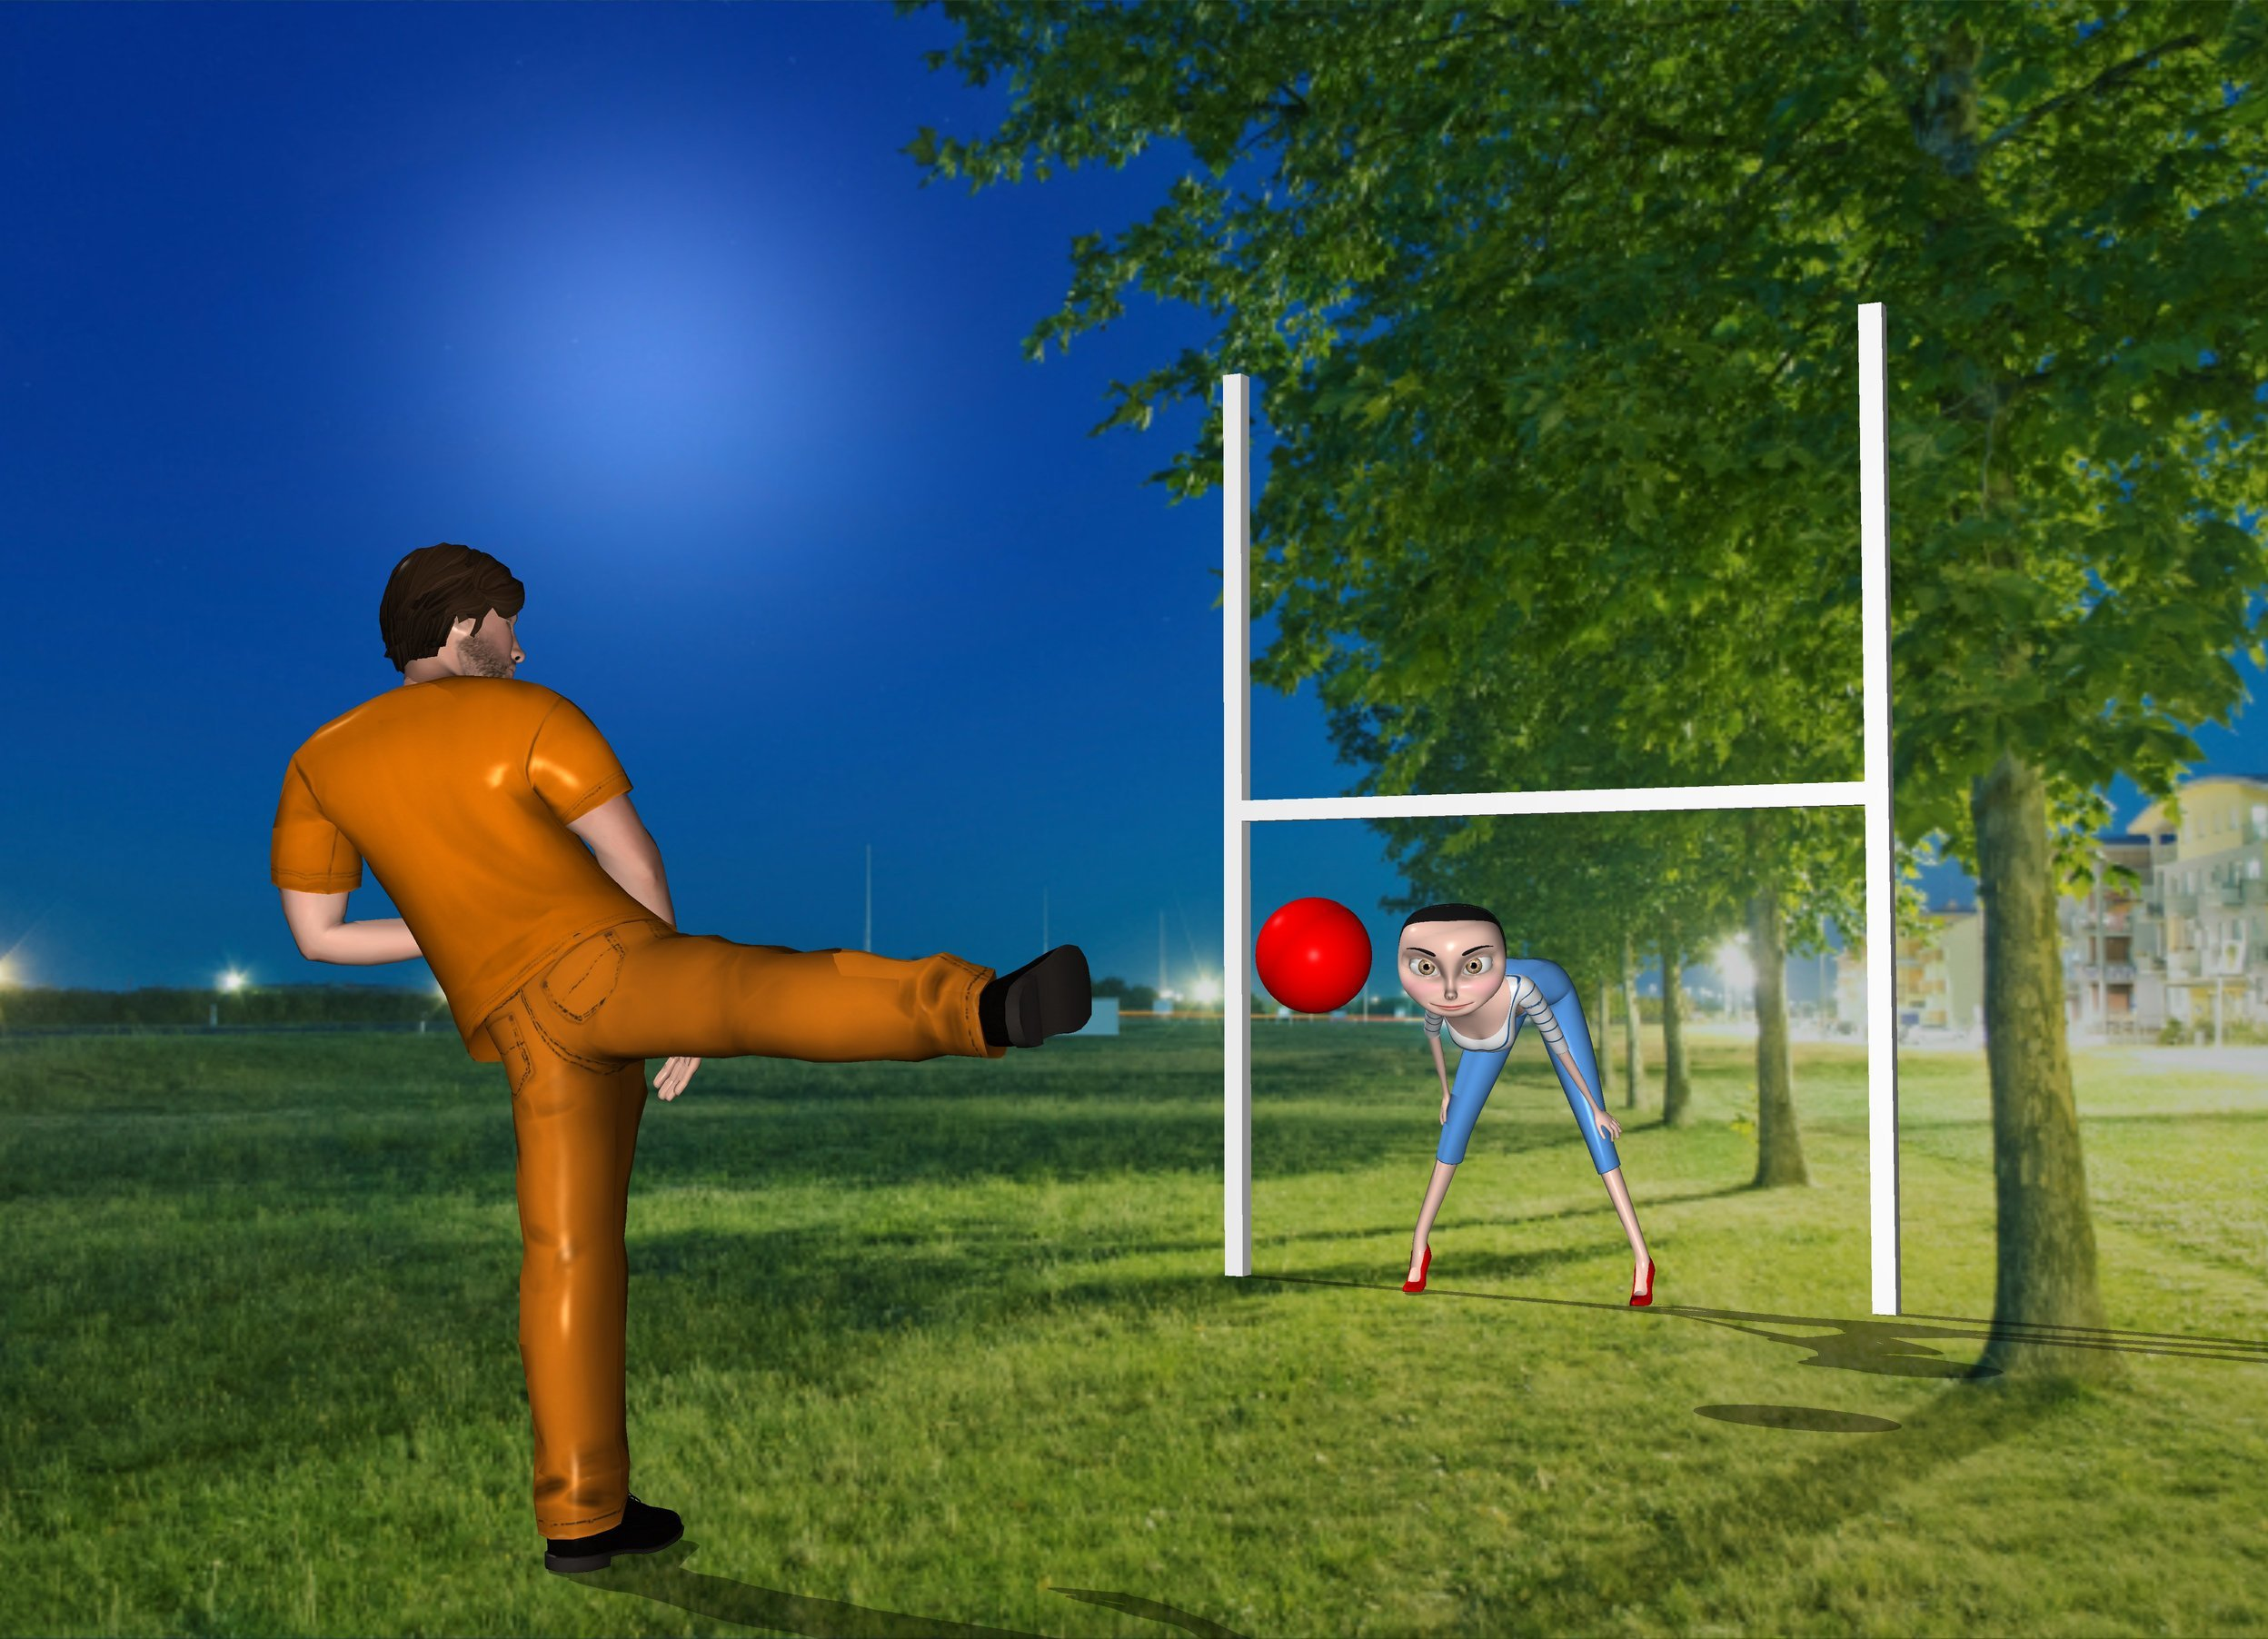 Input text: there is a big woman in front of a goal. 20  feet In front of the woman is a big man. The man faces the woman.  4 feet in front of the woman is a big red ball. The ball is 6 feet above the ground.